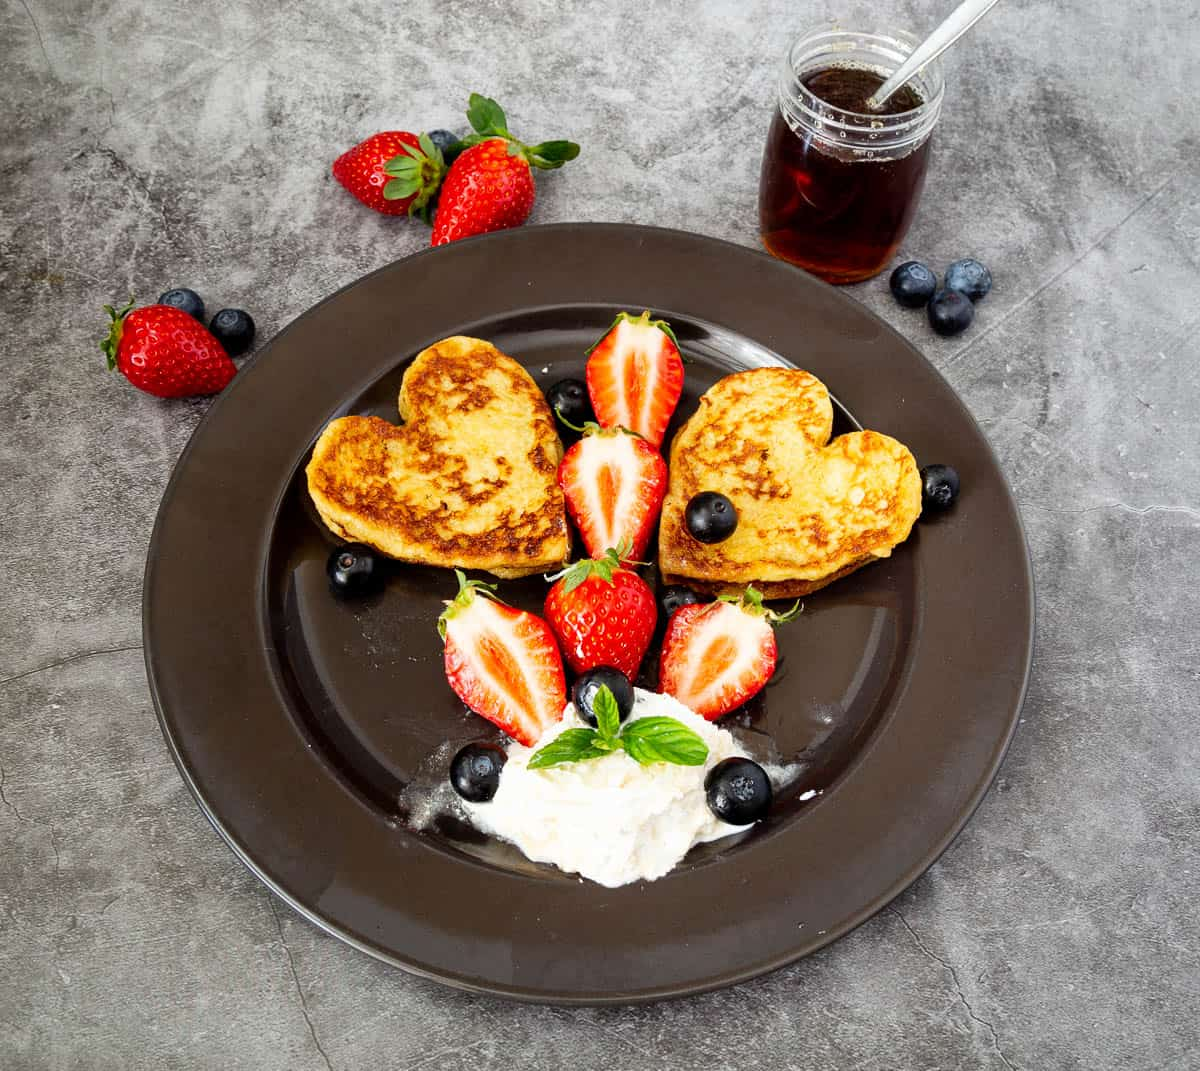 black plate with french toast and fruits